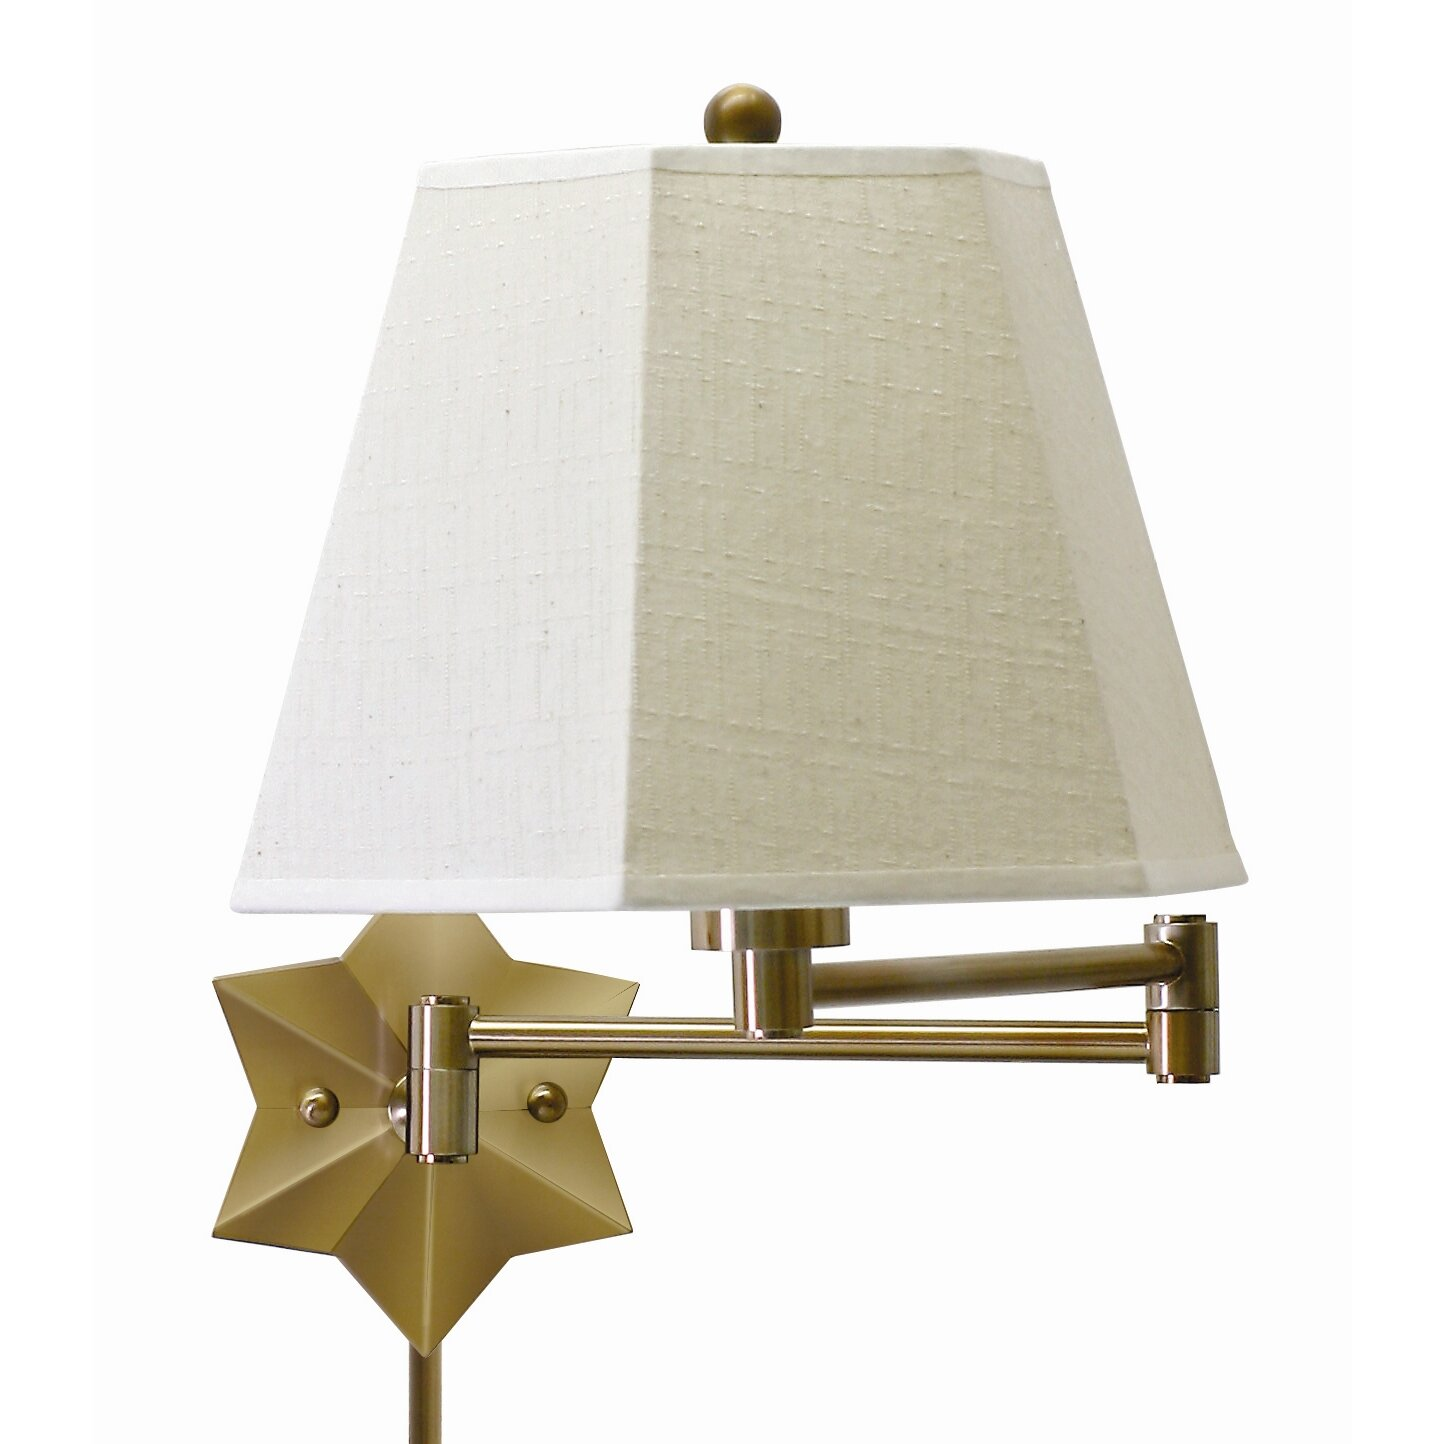 Wall Lamps Wayfair : House of Troy Swing Arm Wall Lamp & Reviews Wayfair